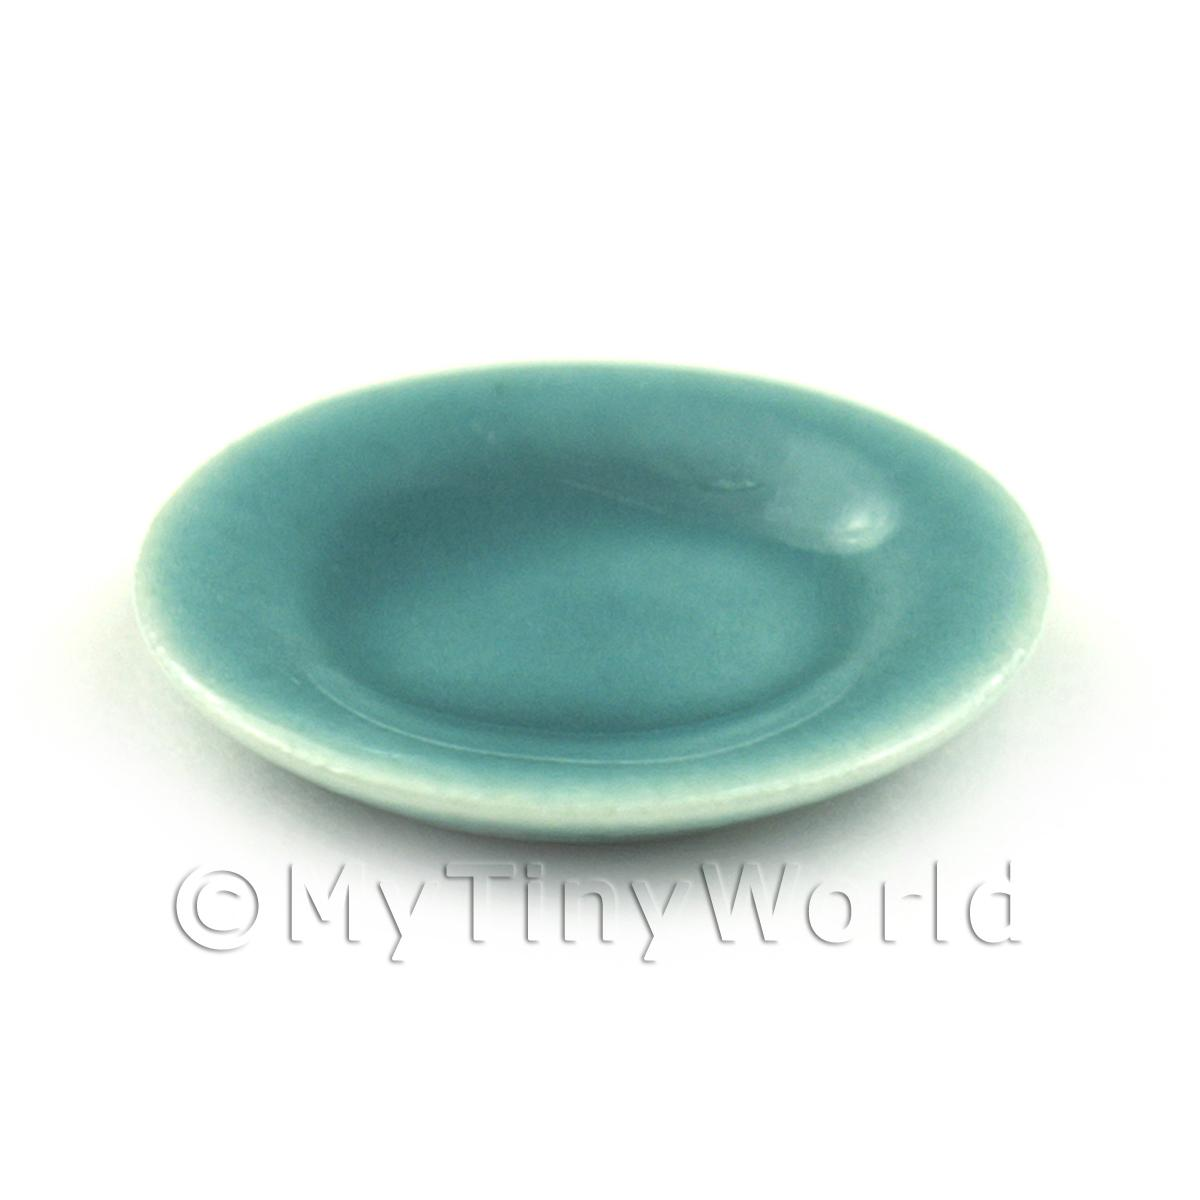 Dolls House Miniature 21mm Aquamarine Ceramic Plate